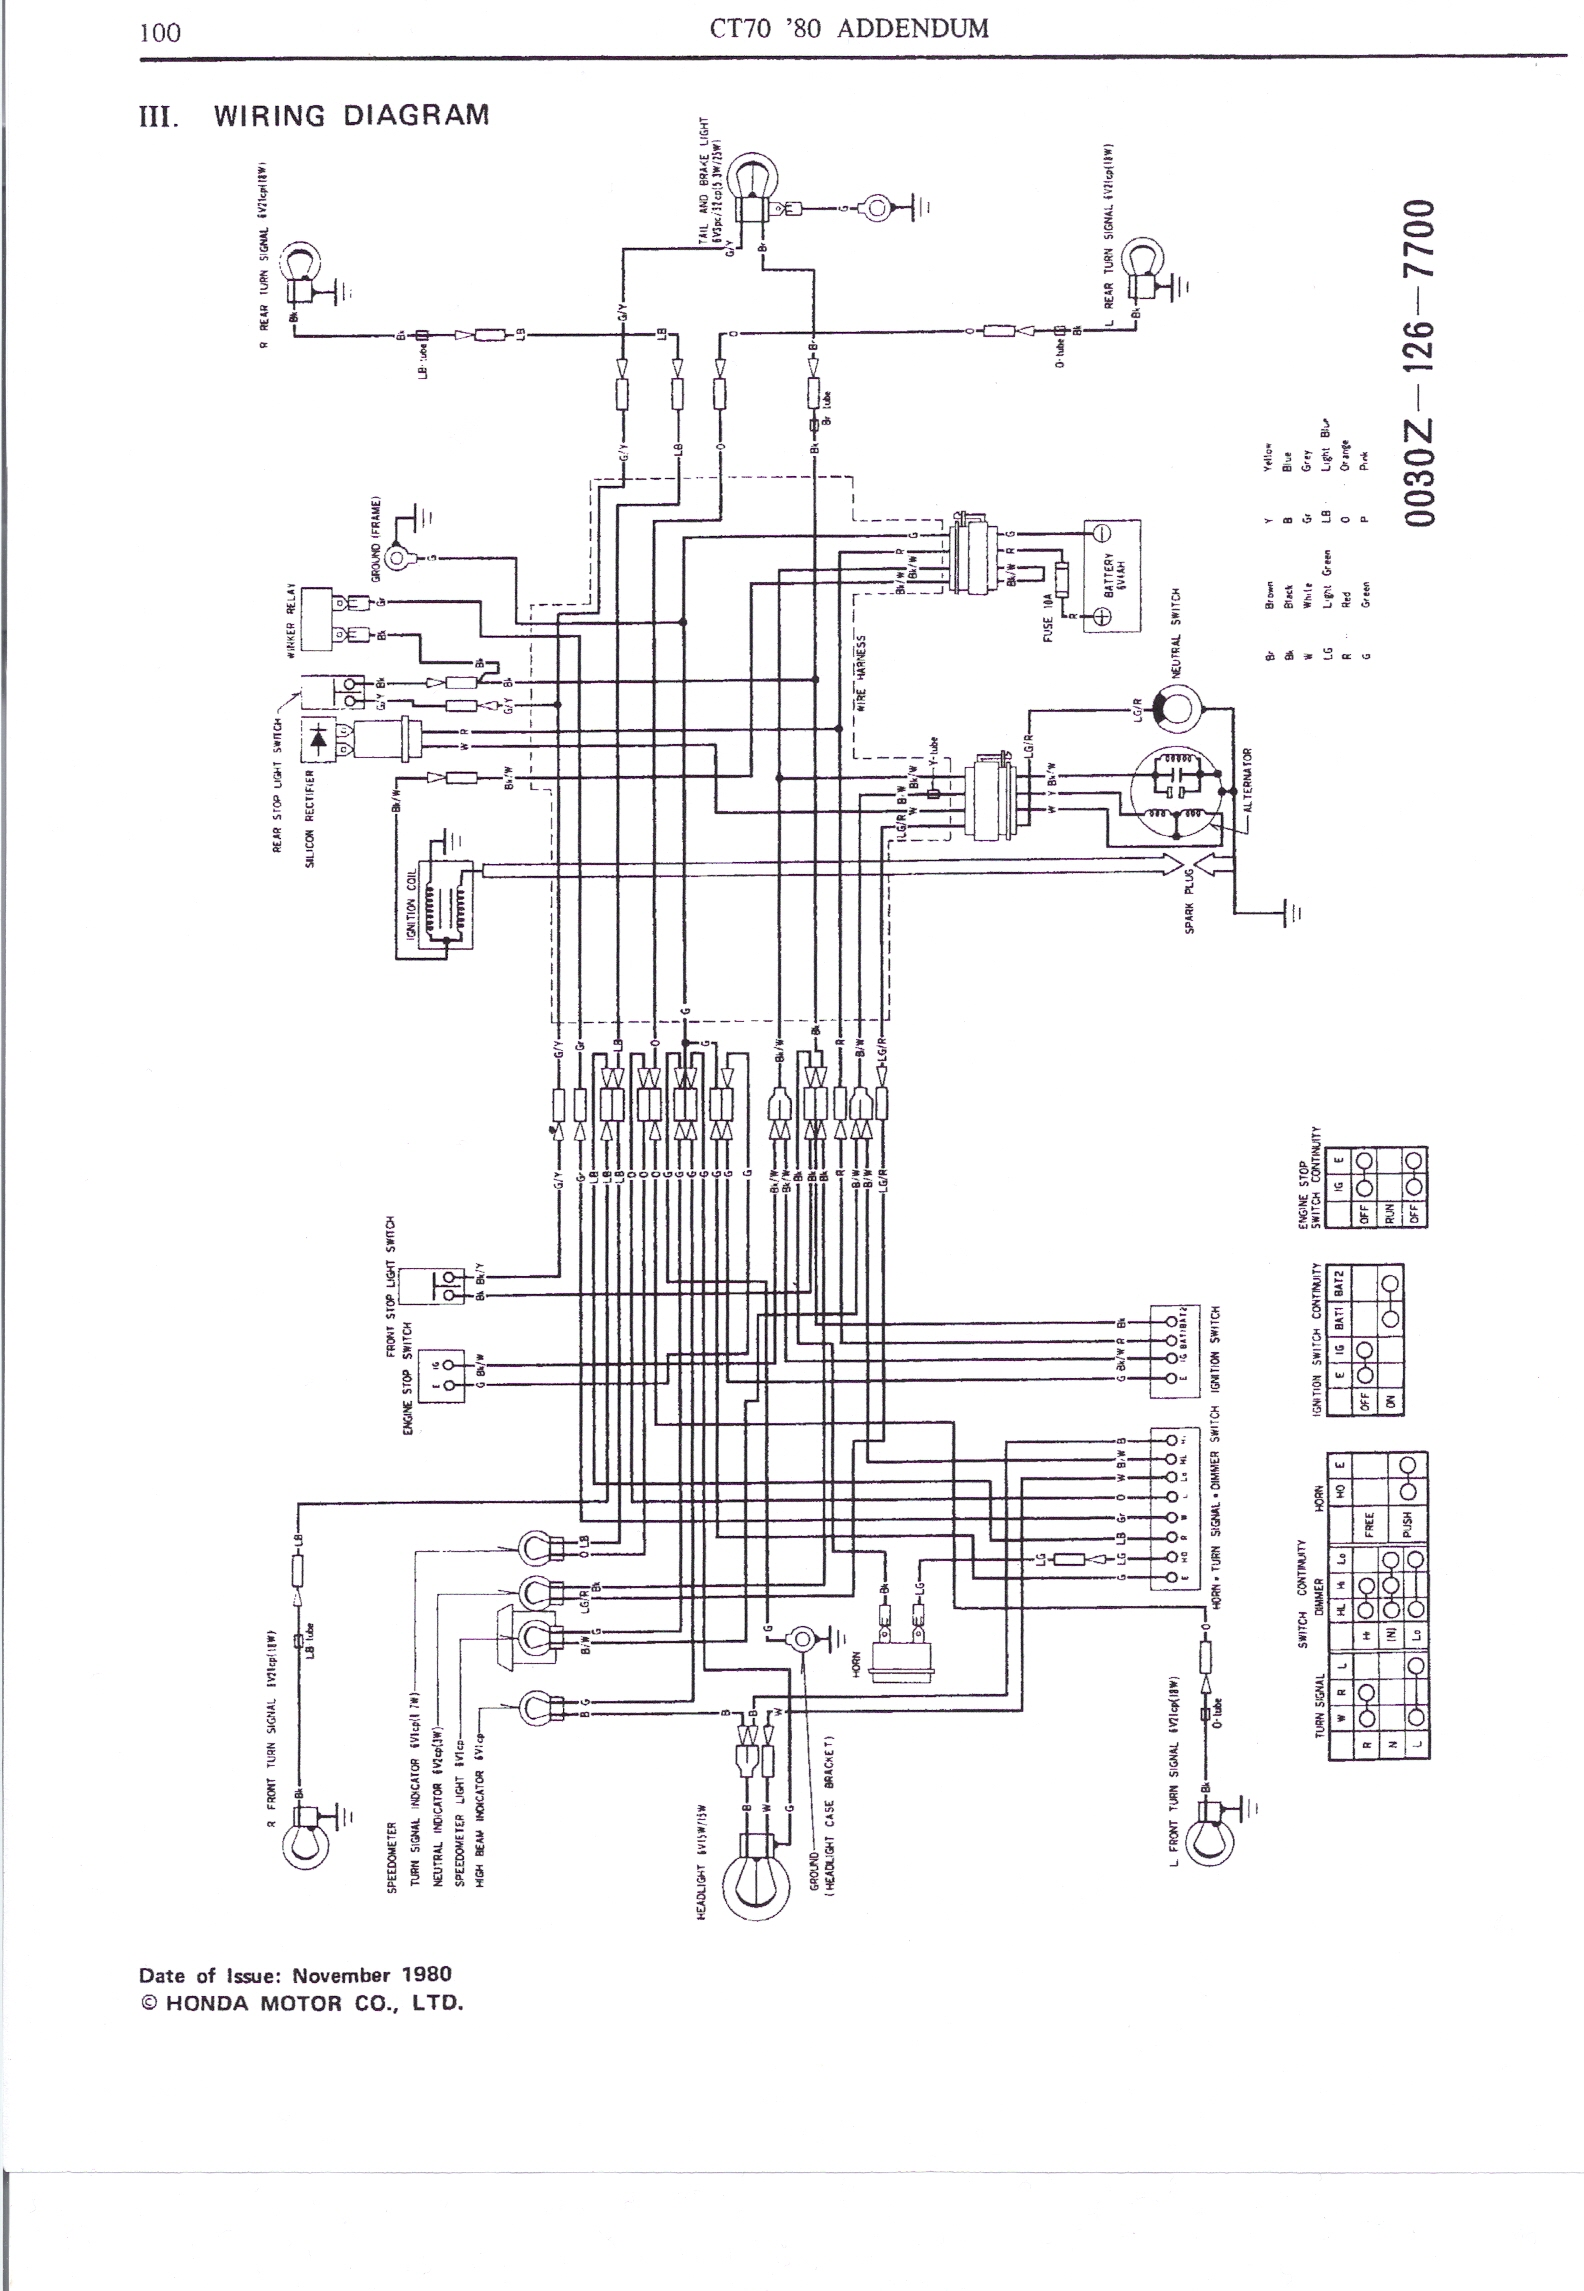 wiring diagram honda ct70 k0  honda  auto wiring diagram